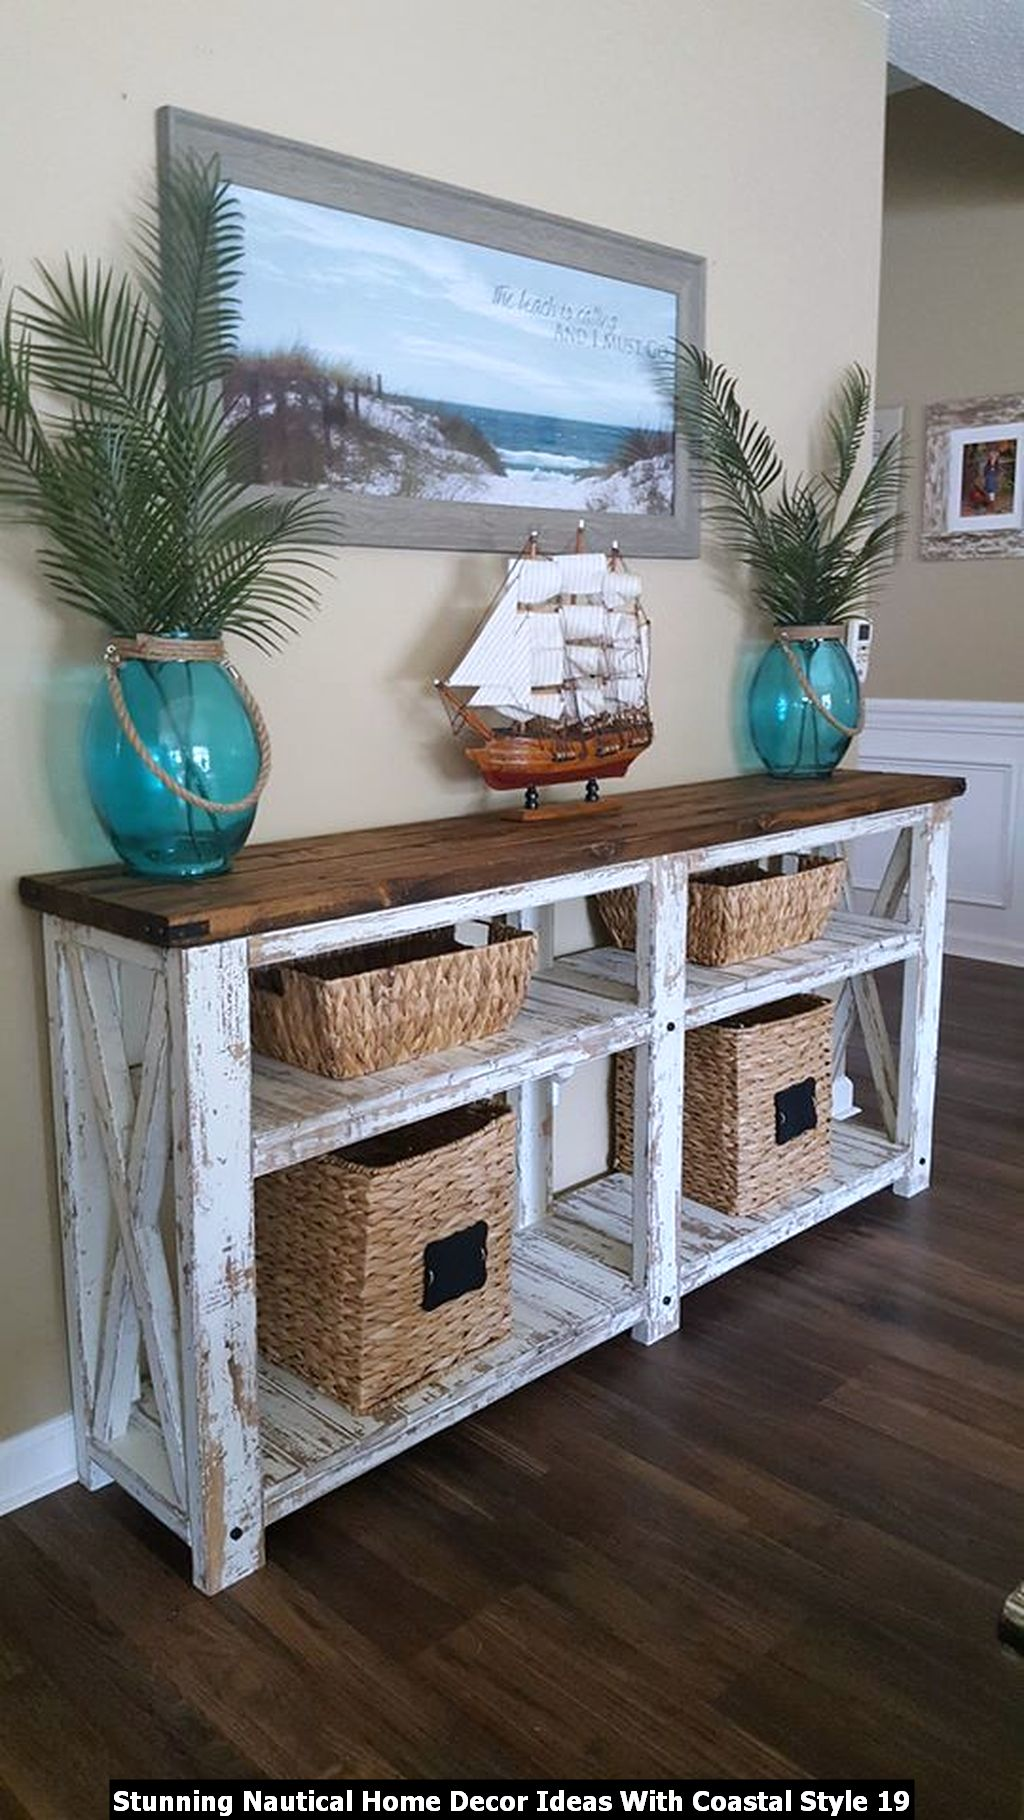 Stunning Nautical Home Decor Ideas With Coastal Style 19